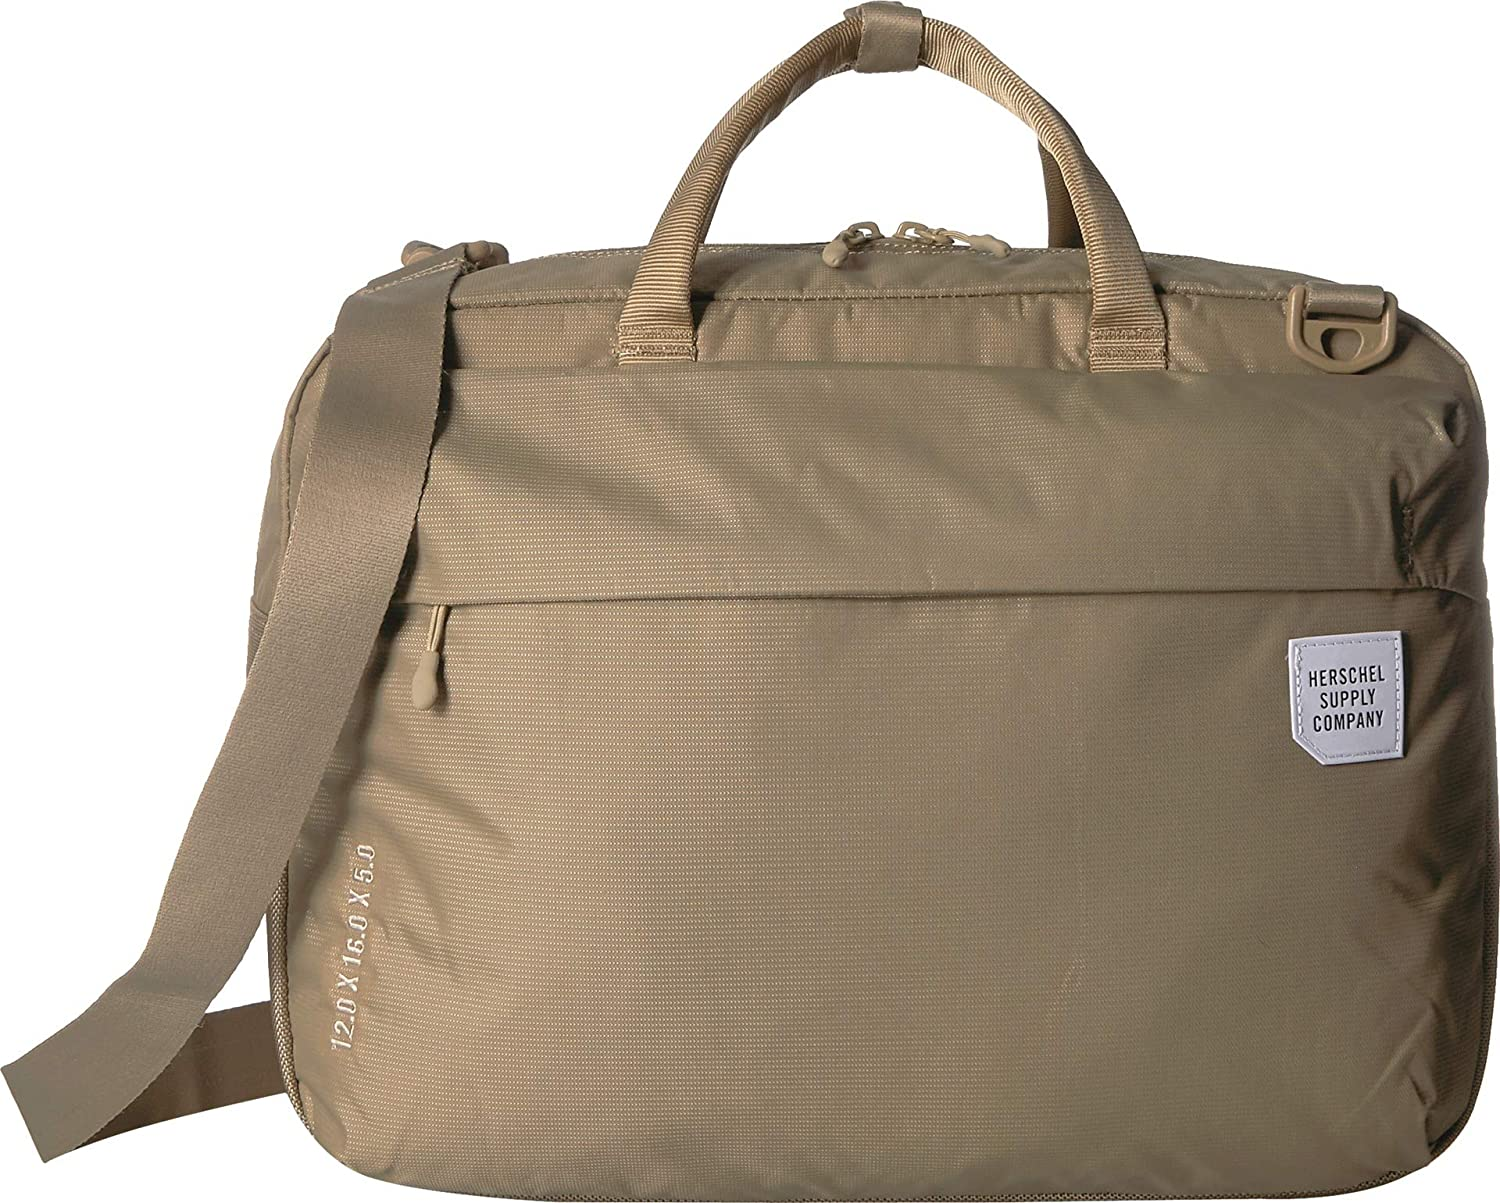 557f6a44a918 Amazon.com  Herschel Britannia Messenger Tasche Shoulder Bag